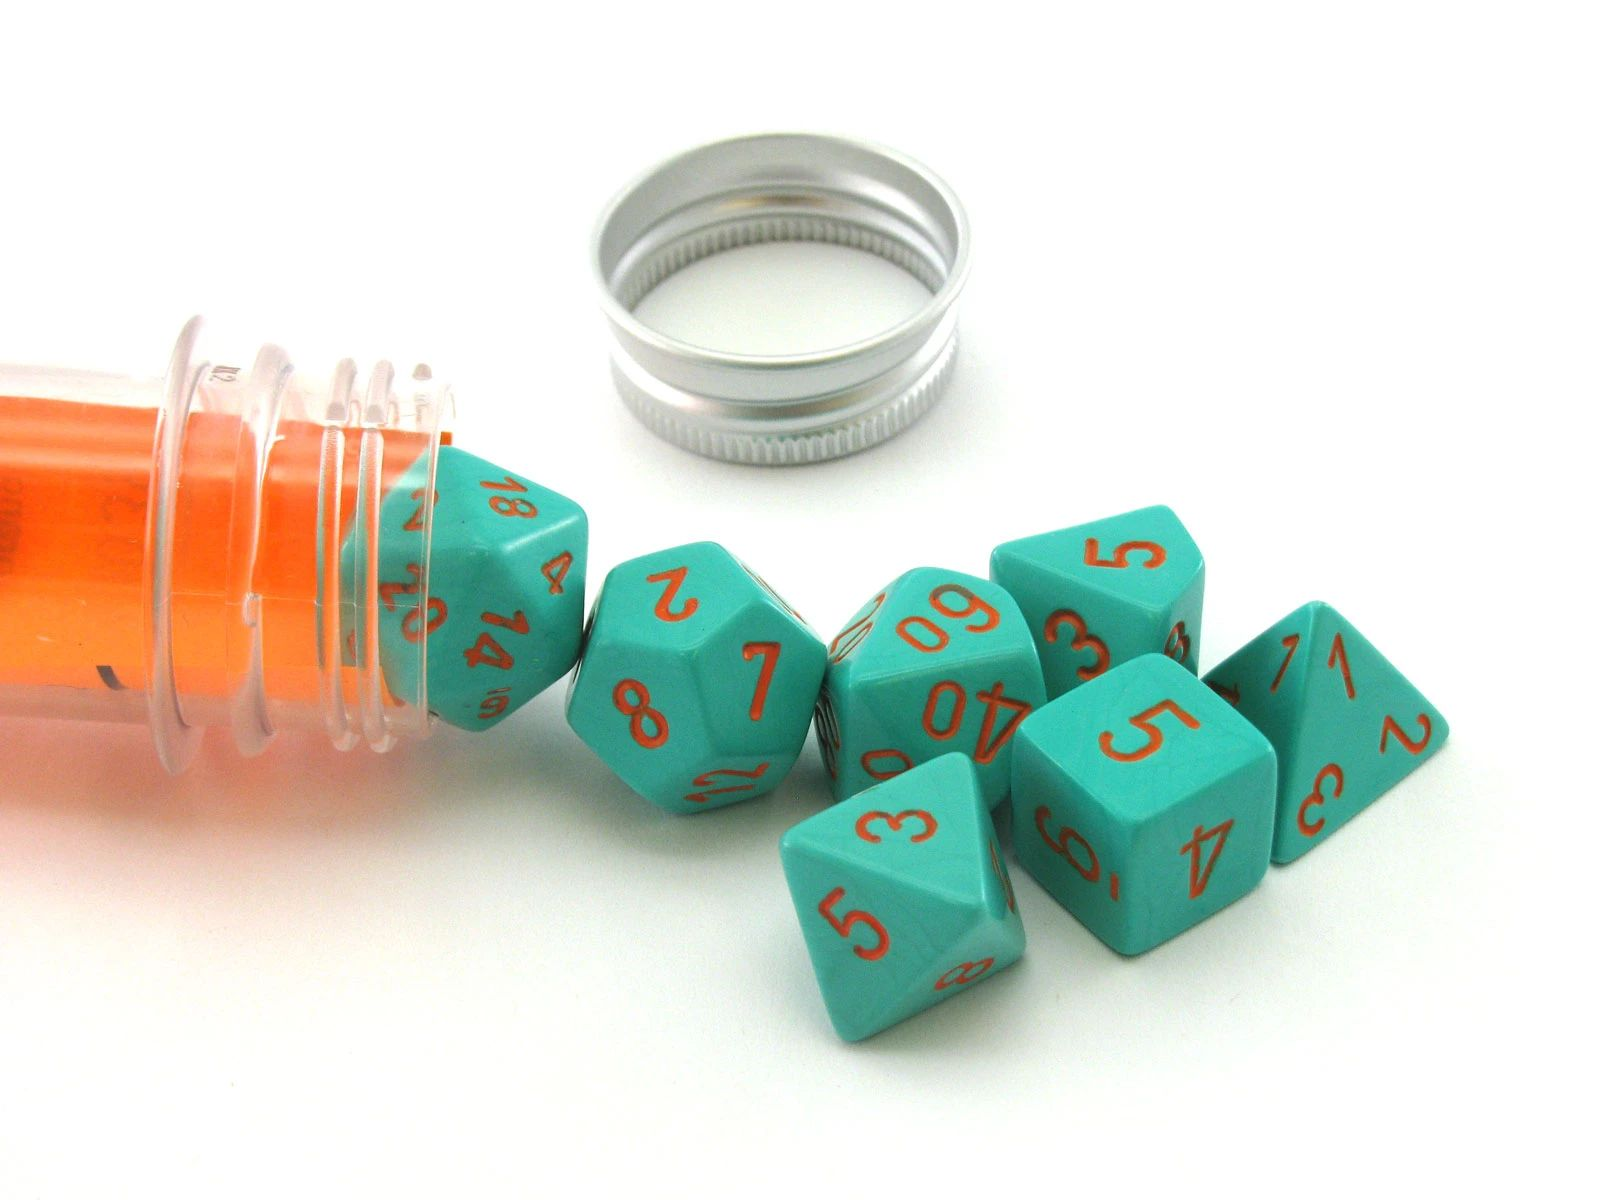 Kocka Set (8) - Lab Dice - Heavy - Turquoise/orange